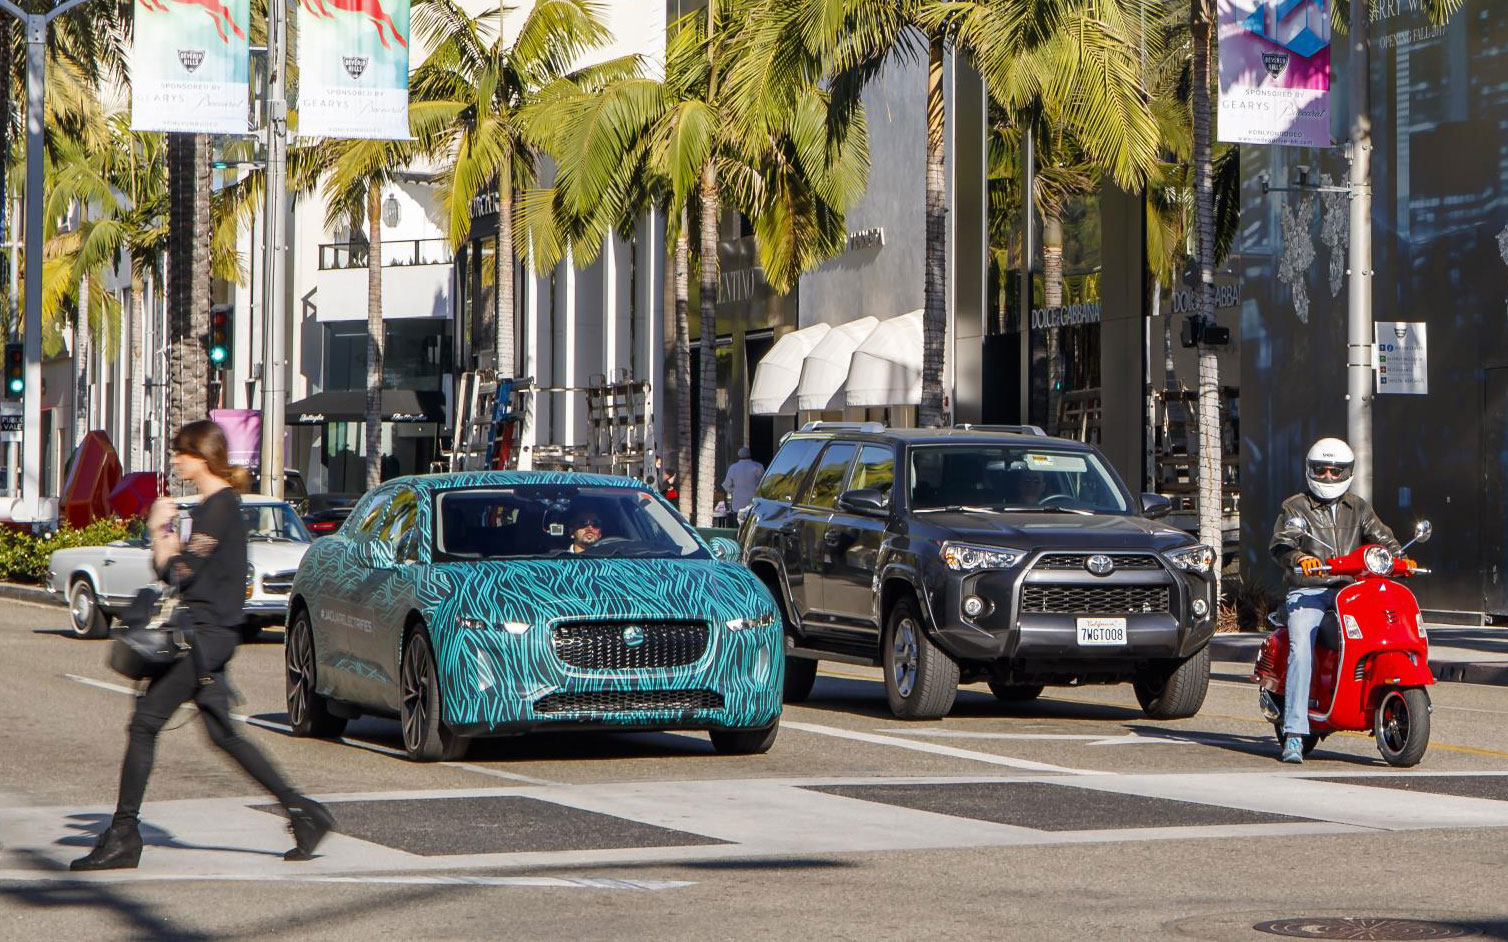 Jaguar I-PACE Enters Final Testing Ahead of Global Reveal in Early 2018 12